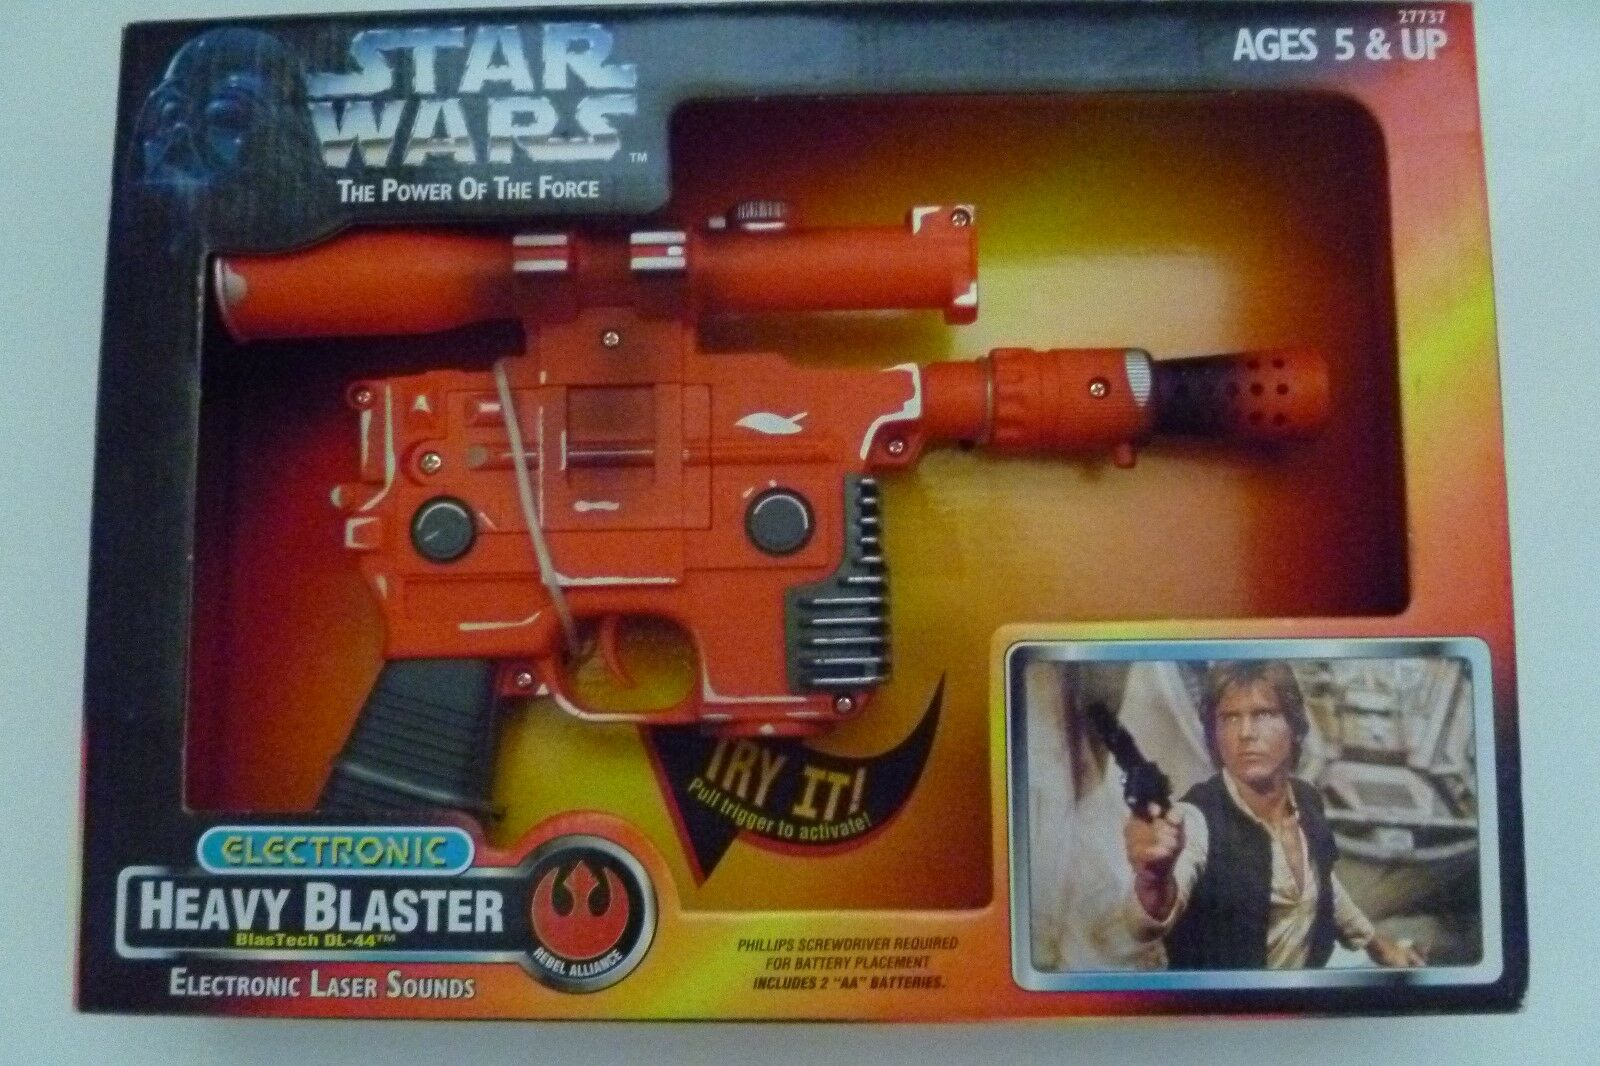 NIB 1996 KENNER Star Wars Power of the Force POTF electronic HEAVY BLASTER NEW